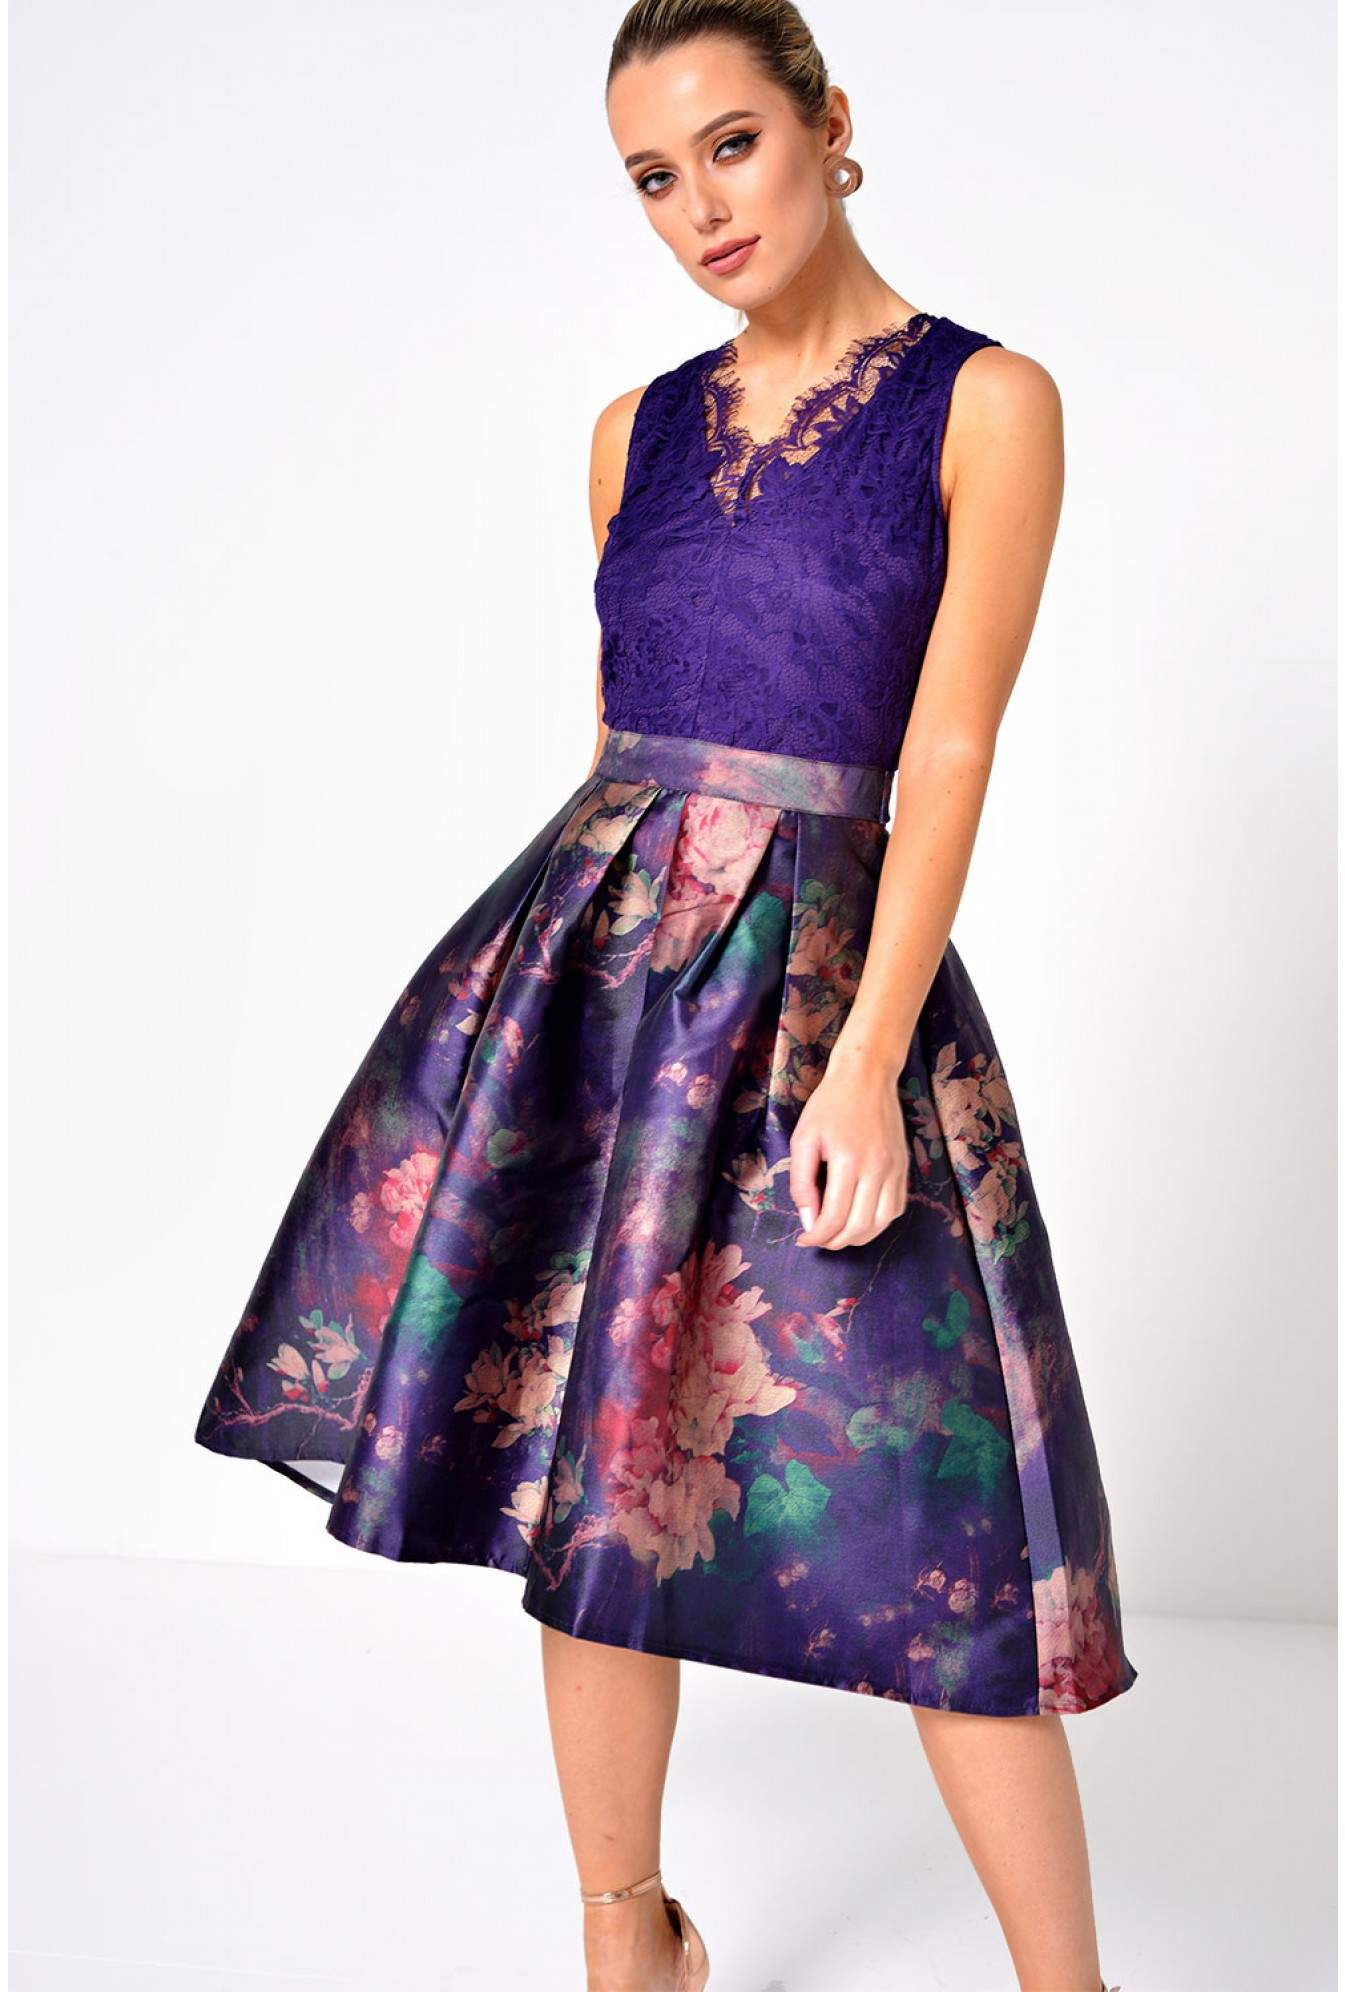 d1c859ed46309 Marc Angelo Paige Lace Top Skater Dress on Purple